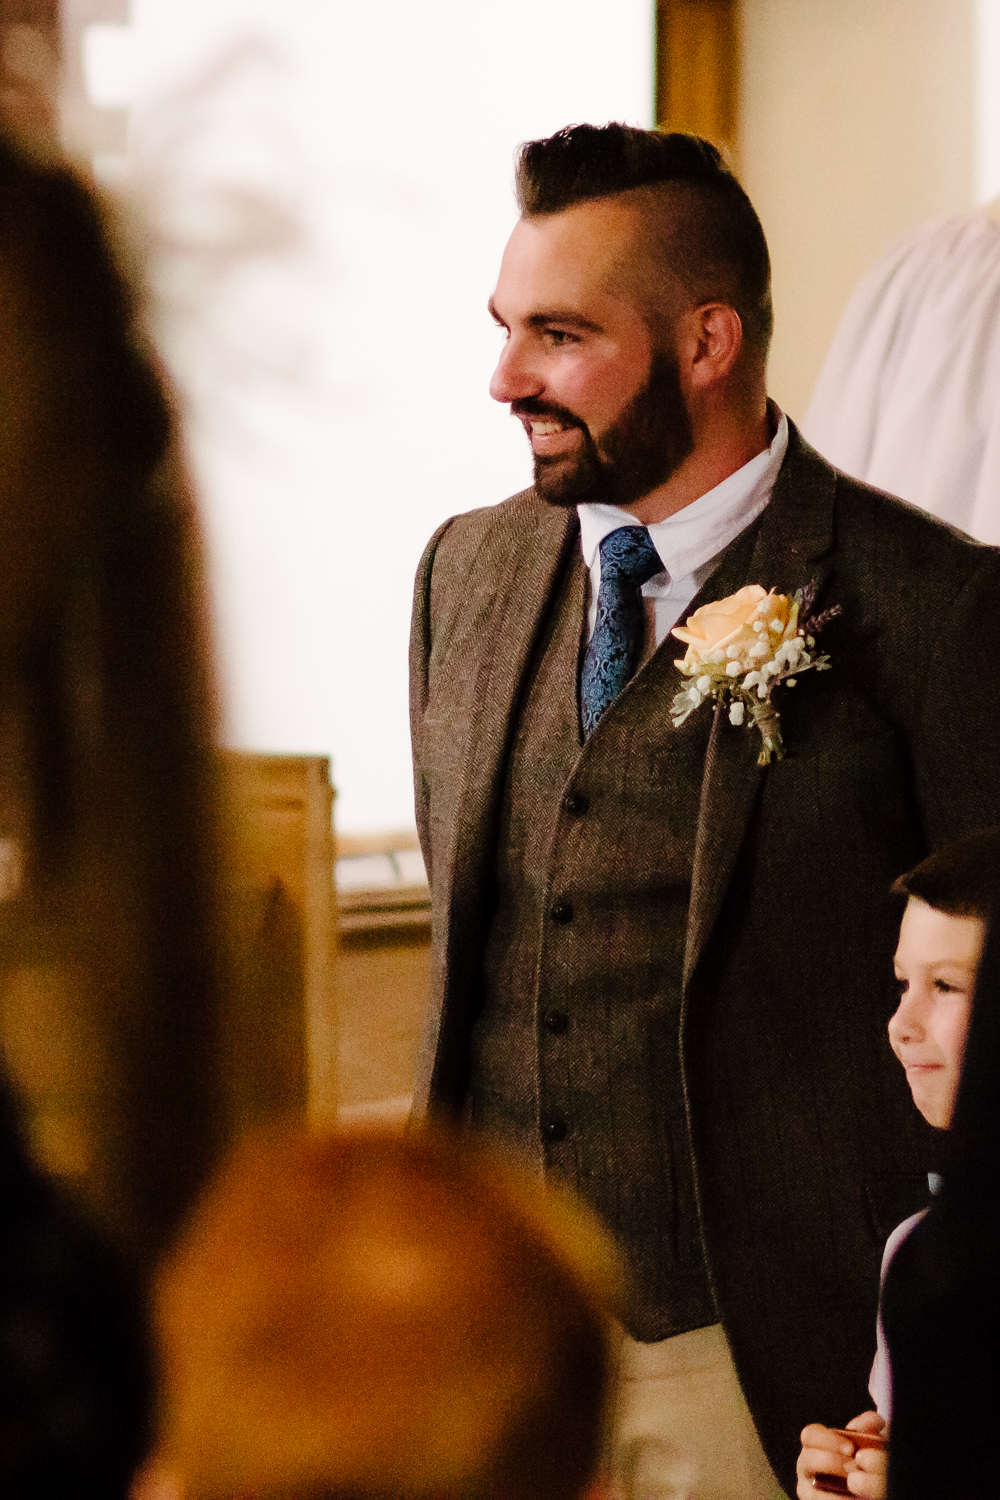 north-wales-wedding-photographer-177.jpg